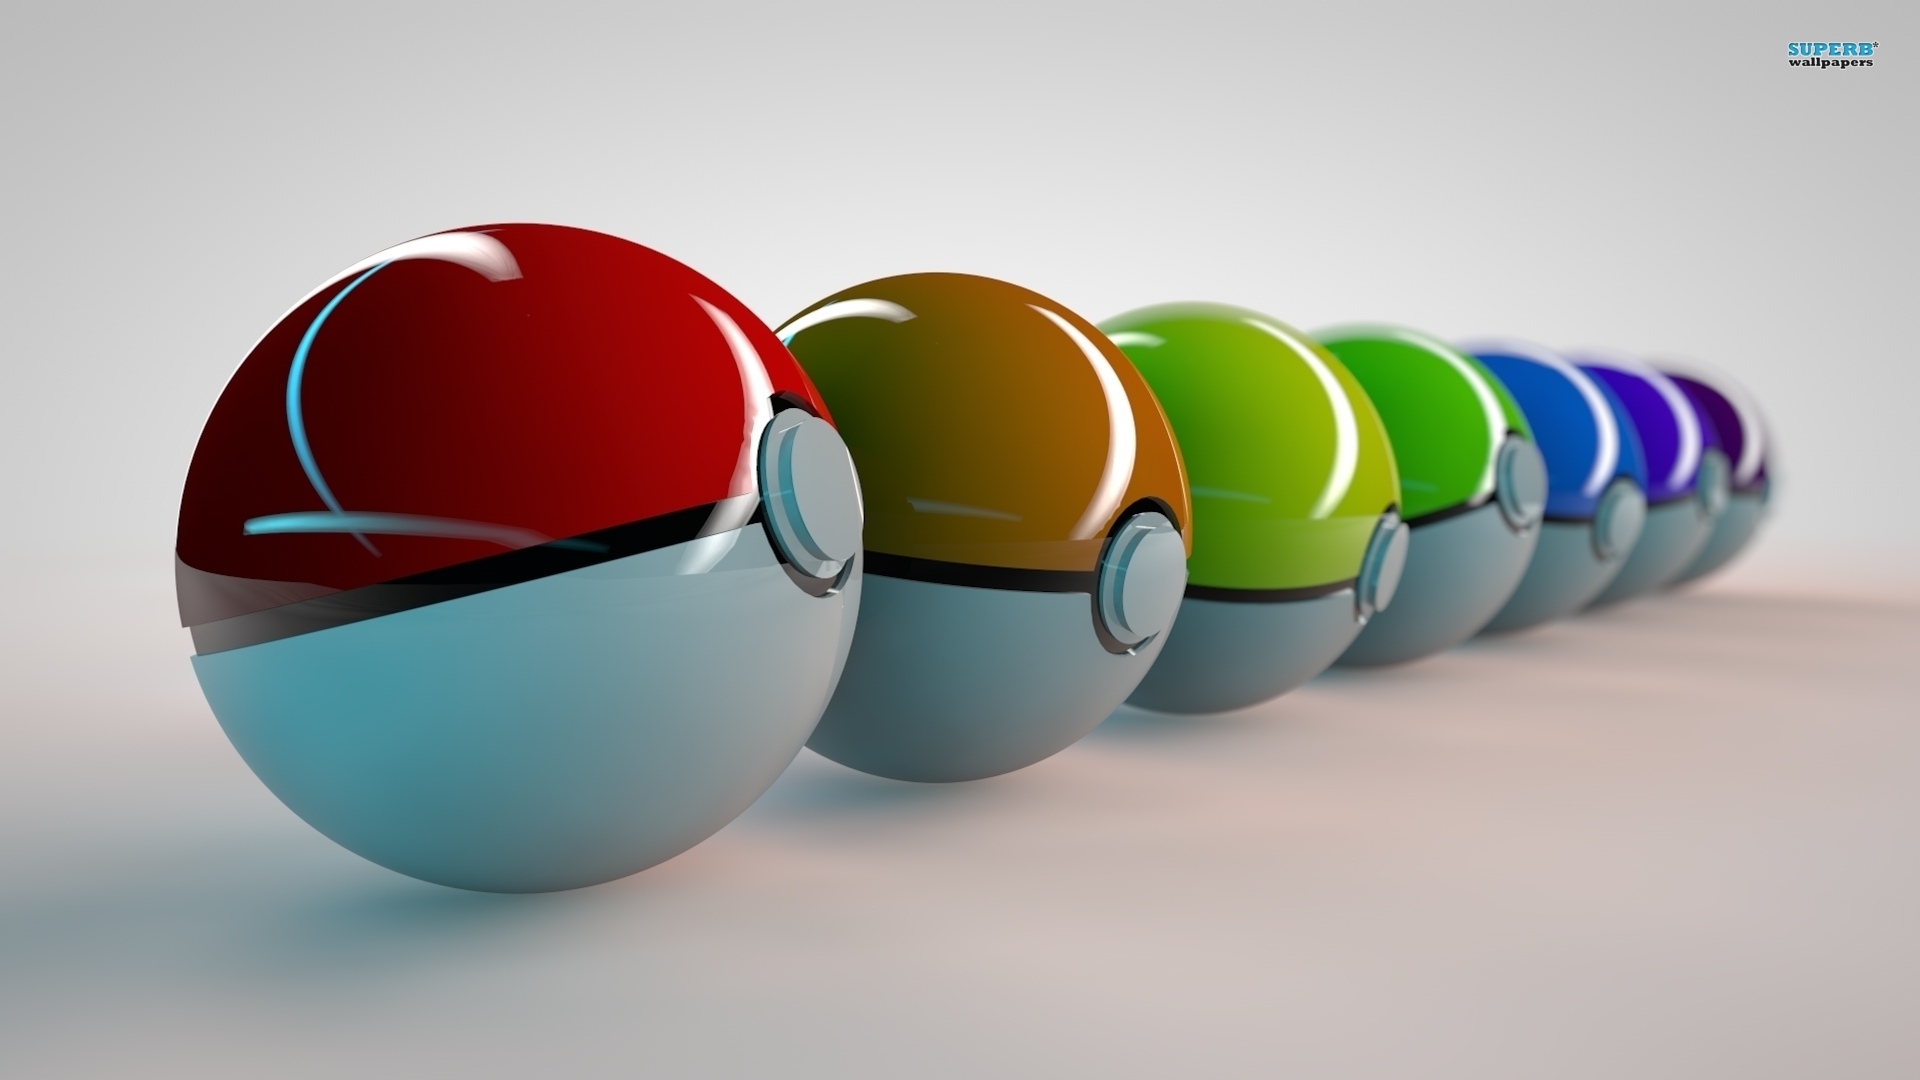 Pokemon balls wallpaper 1920x1080 jpg